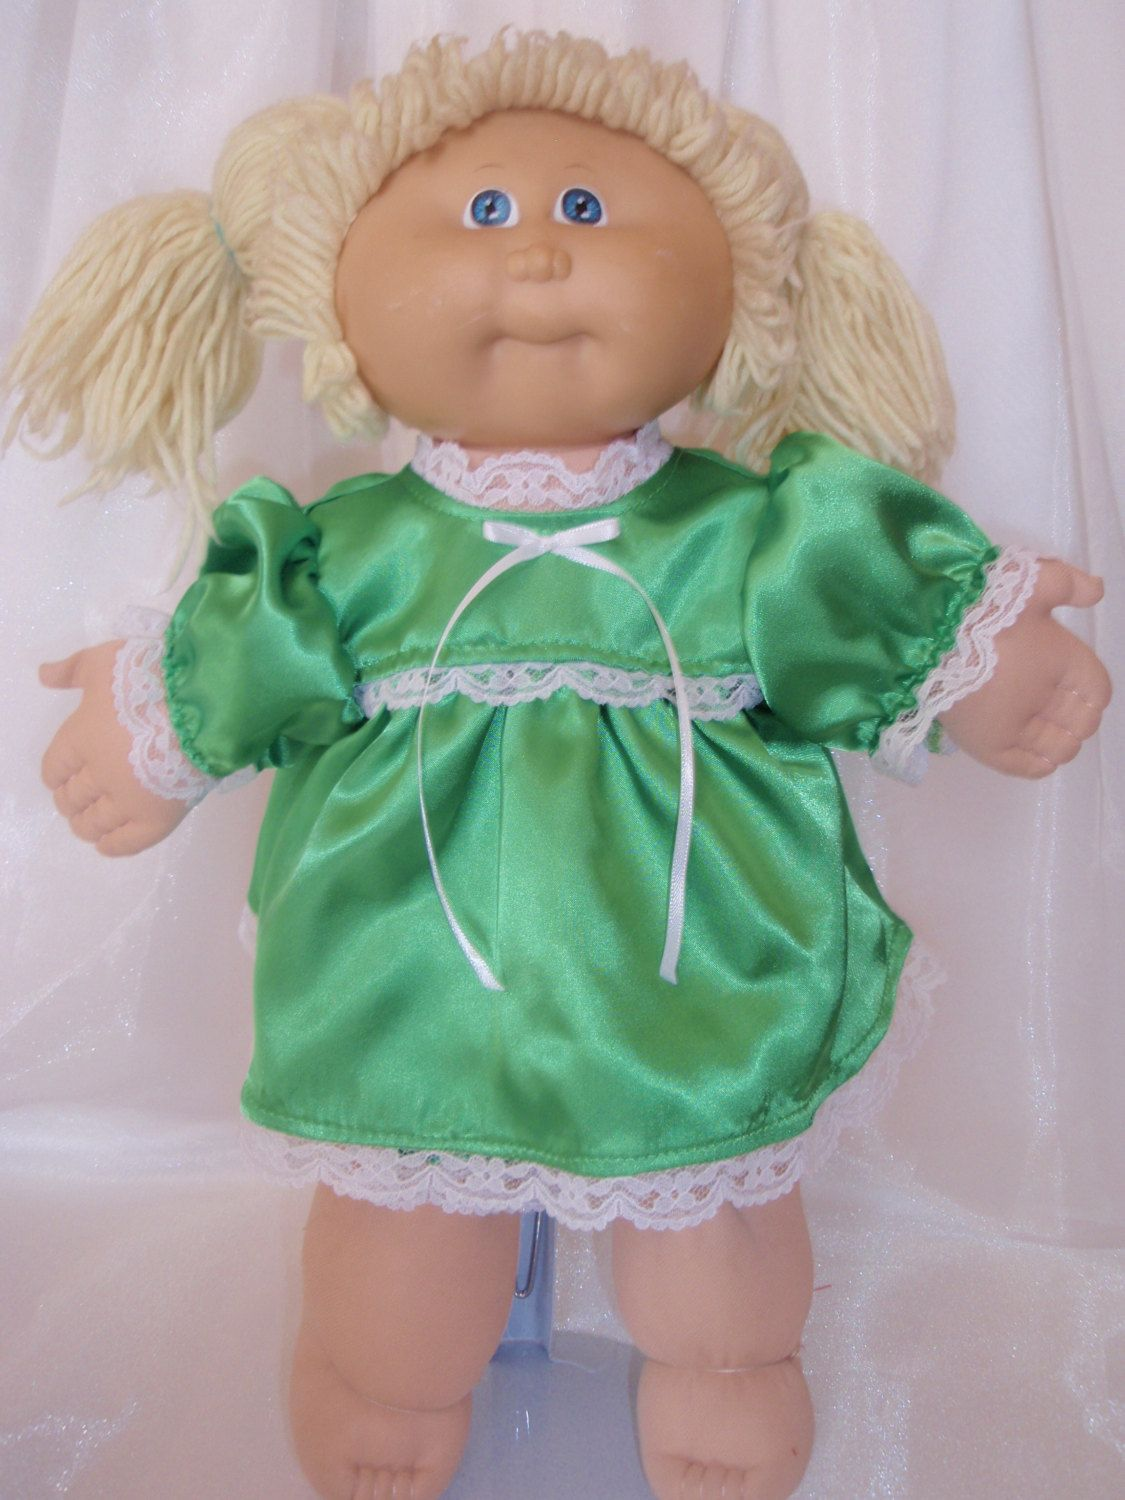 Cabbage Patch Green Satin Dress and Panties by Karensdollkreations on Etsy